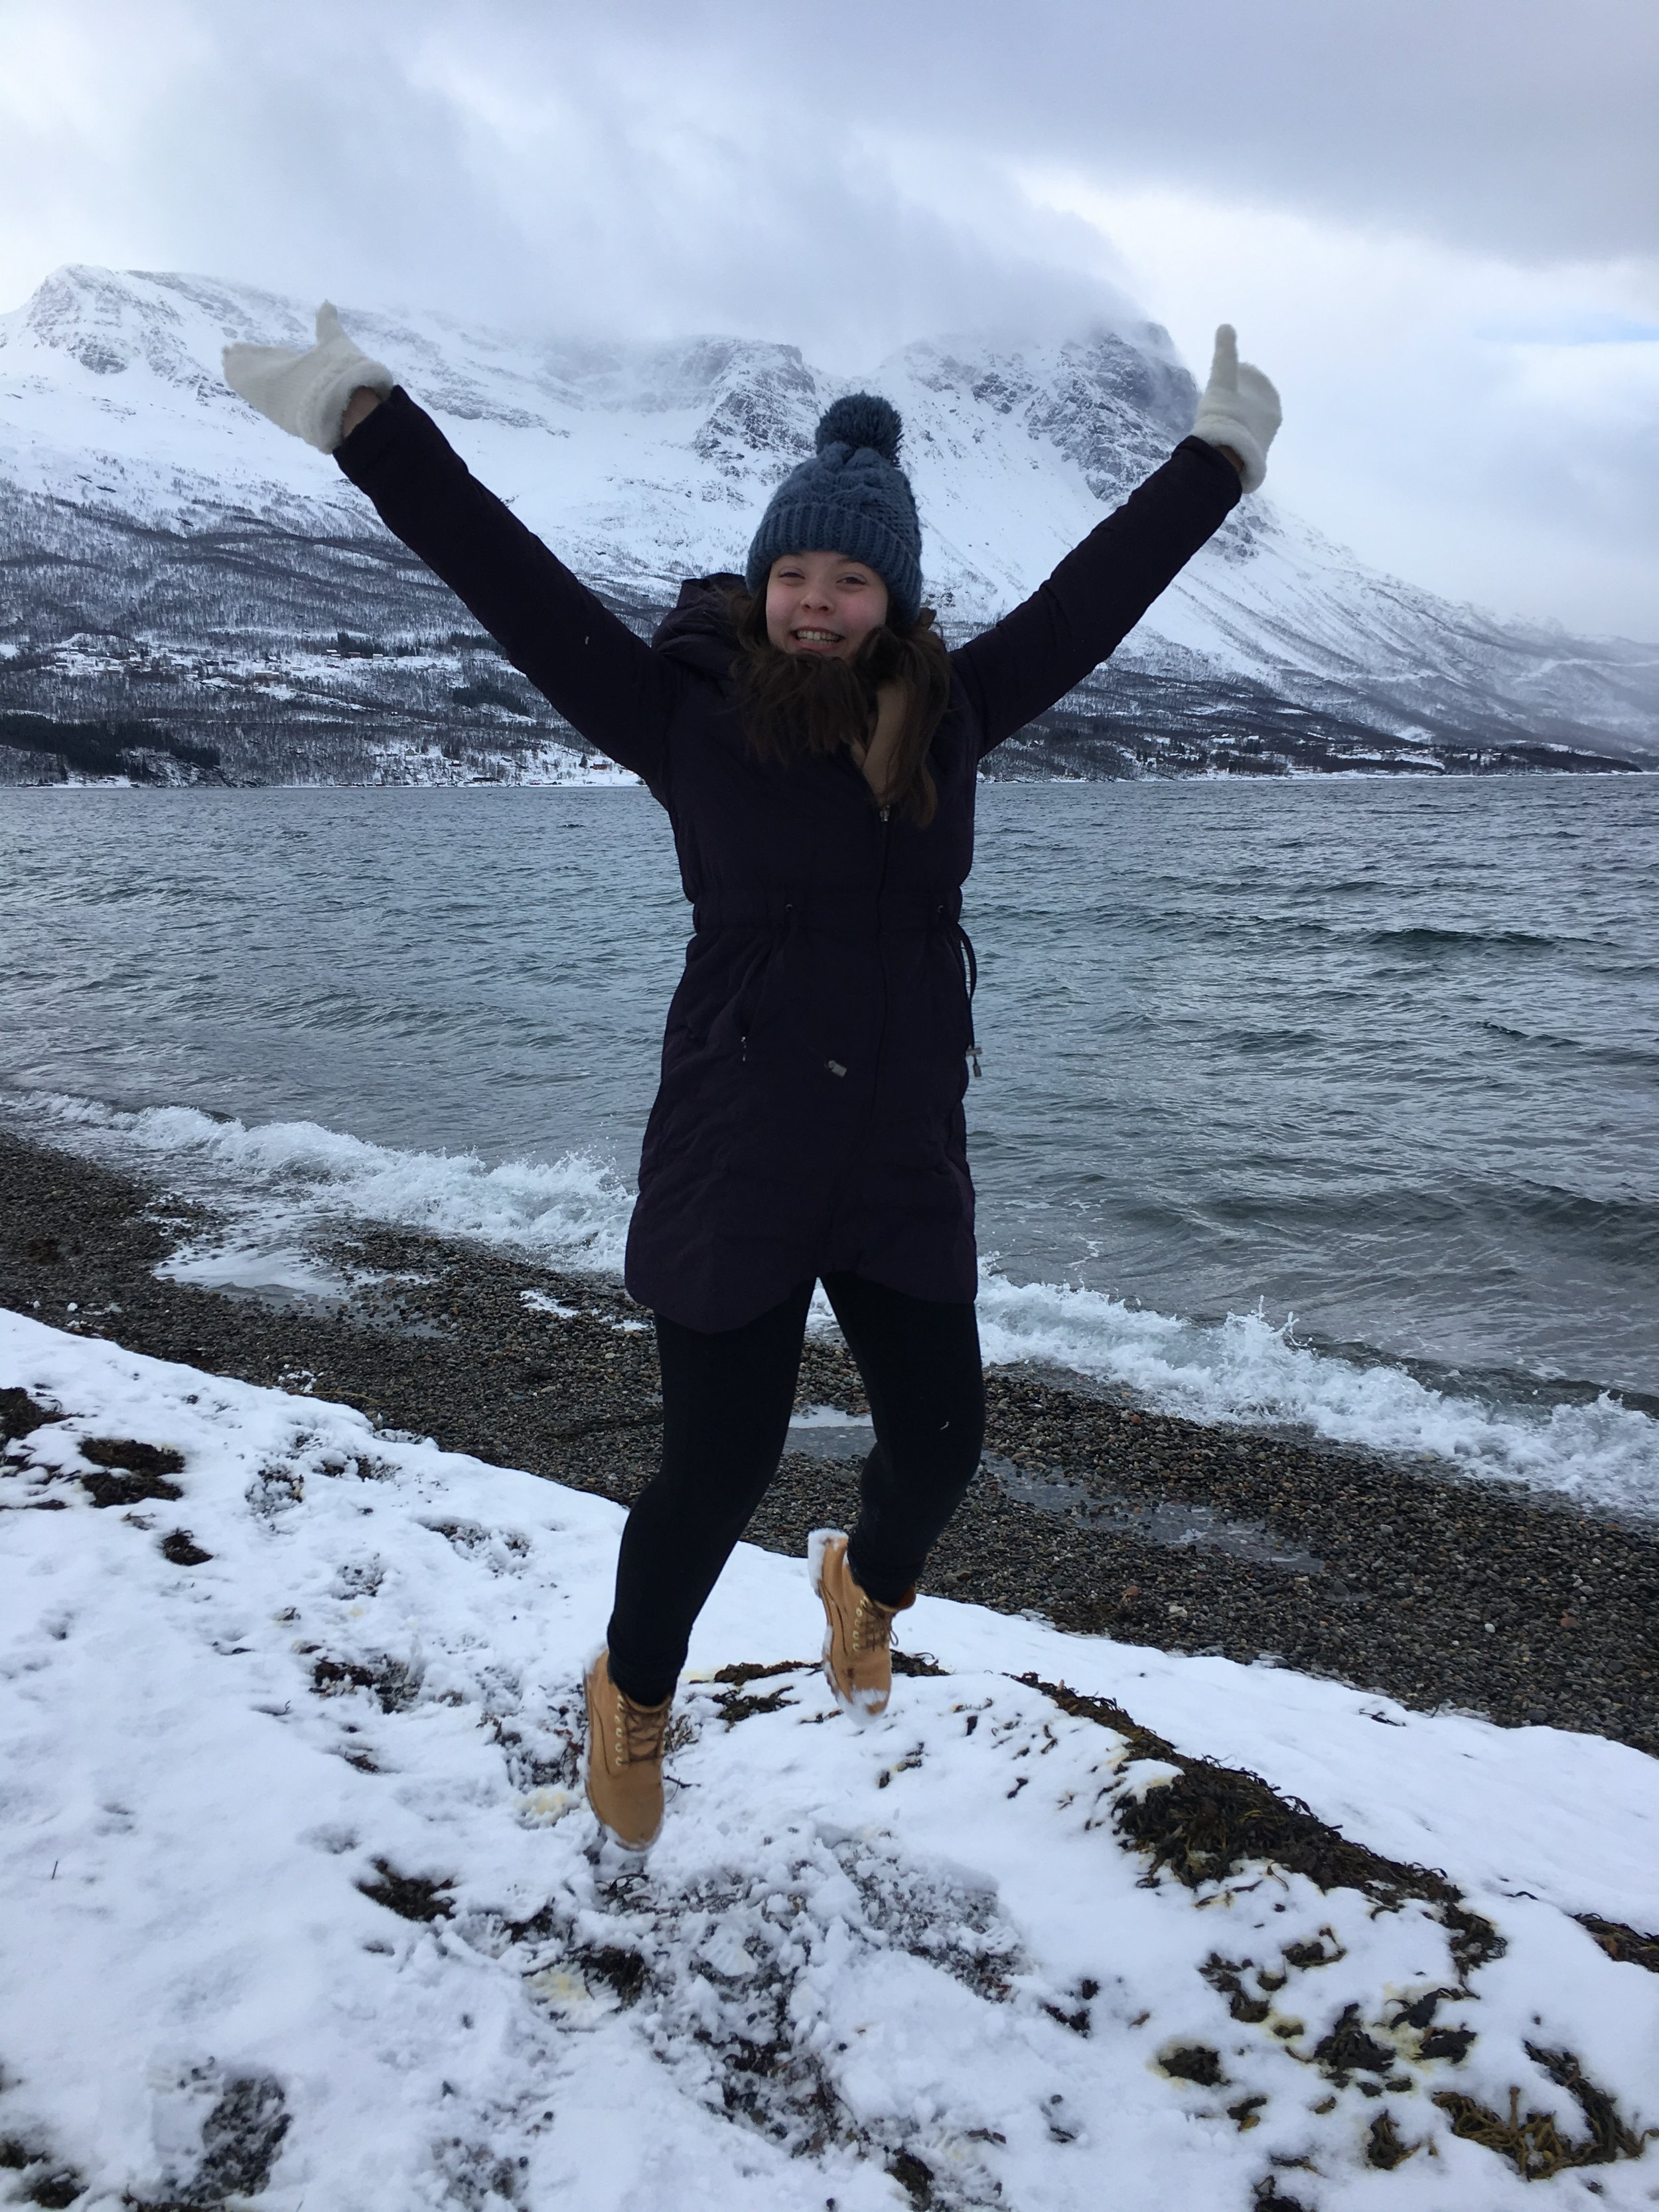 On a trip to Narvik, Norway